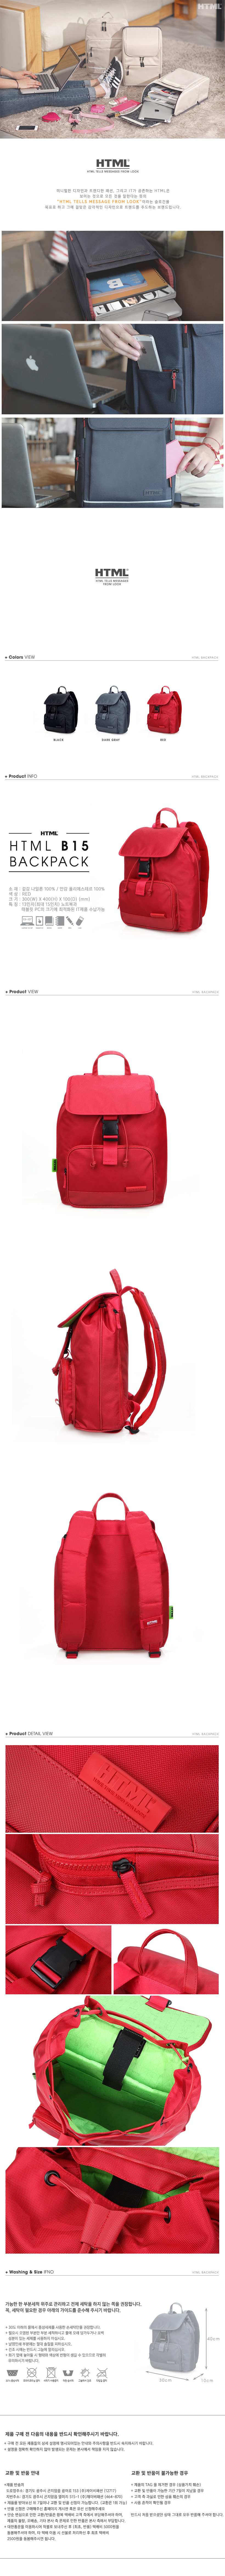 [에이치티엠엘]HTML - B15 Backpack (Dark Red) (JHD5BG15N205F0)_백팩추천